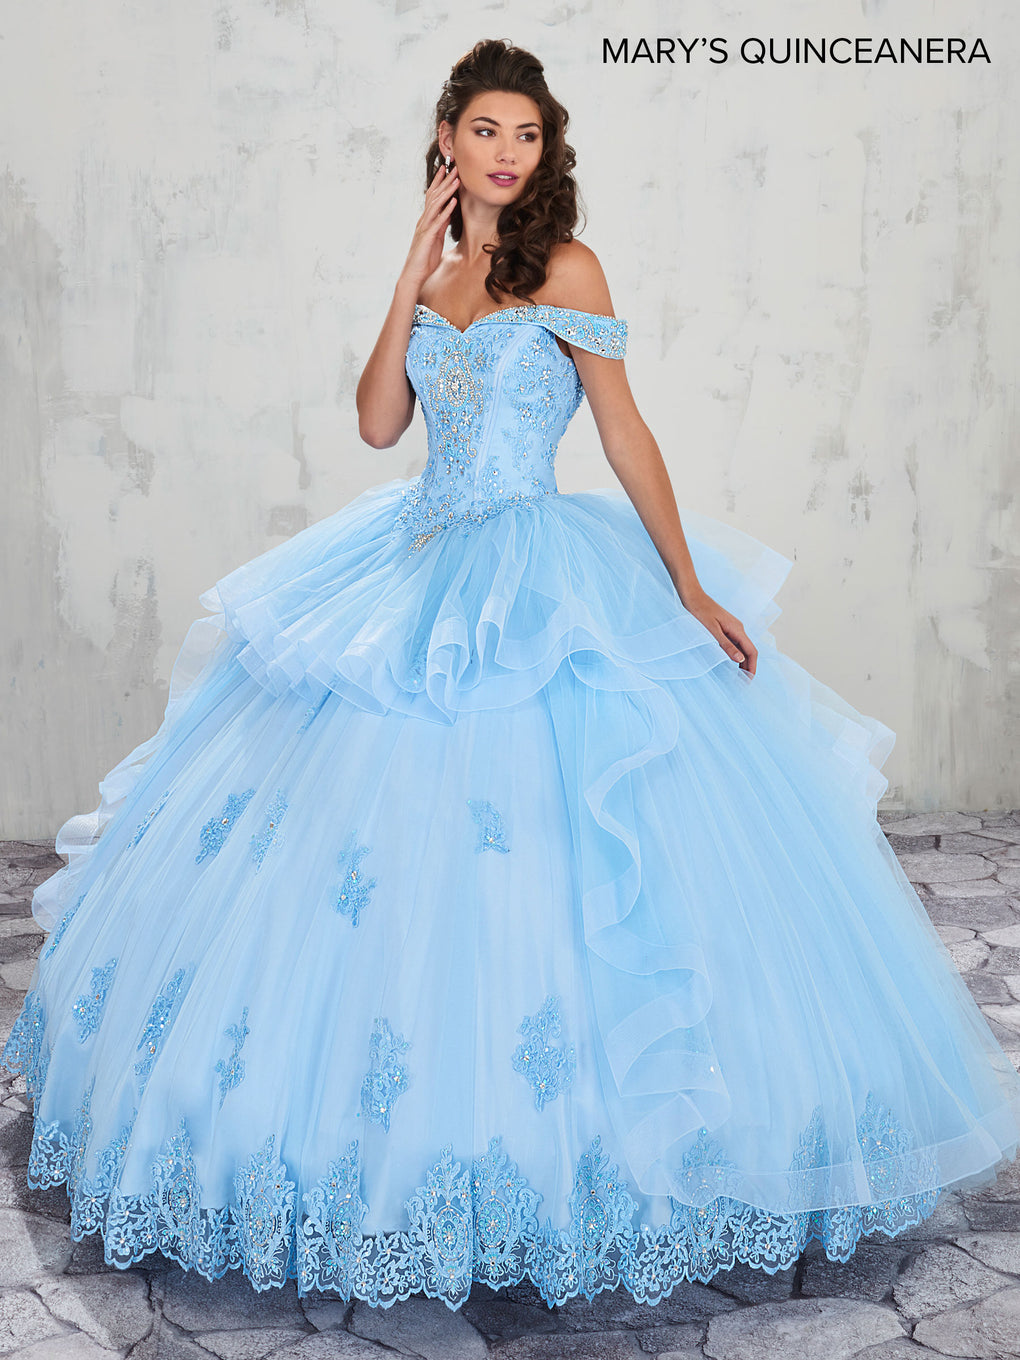 Marys Quinceanera Dresses in Light Blue, Emerald, or White Color